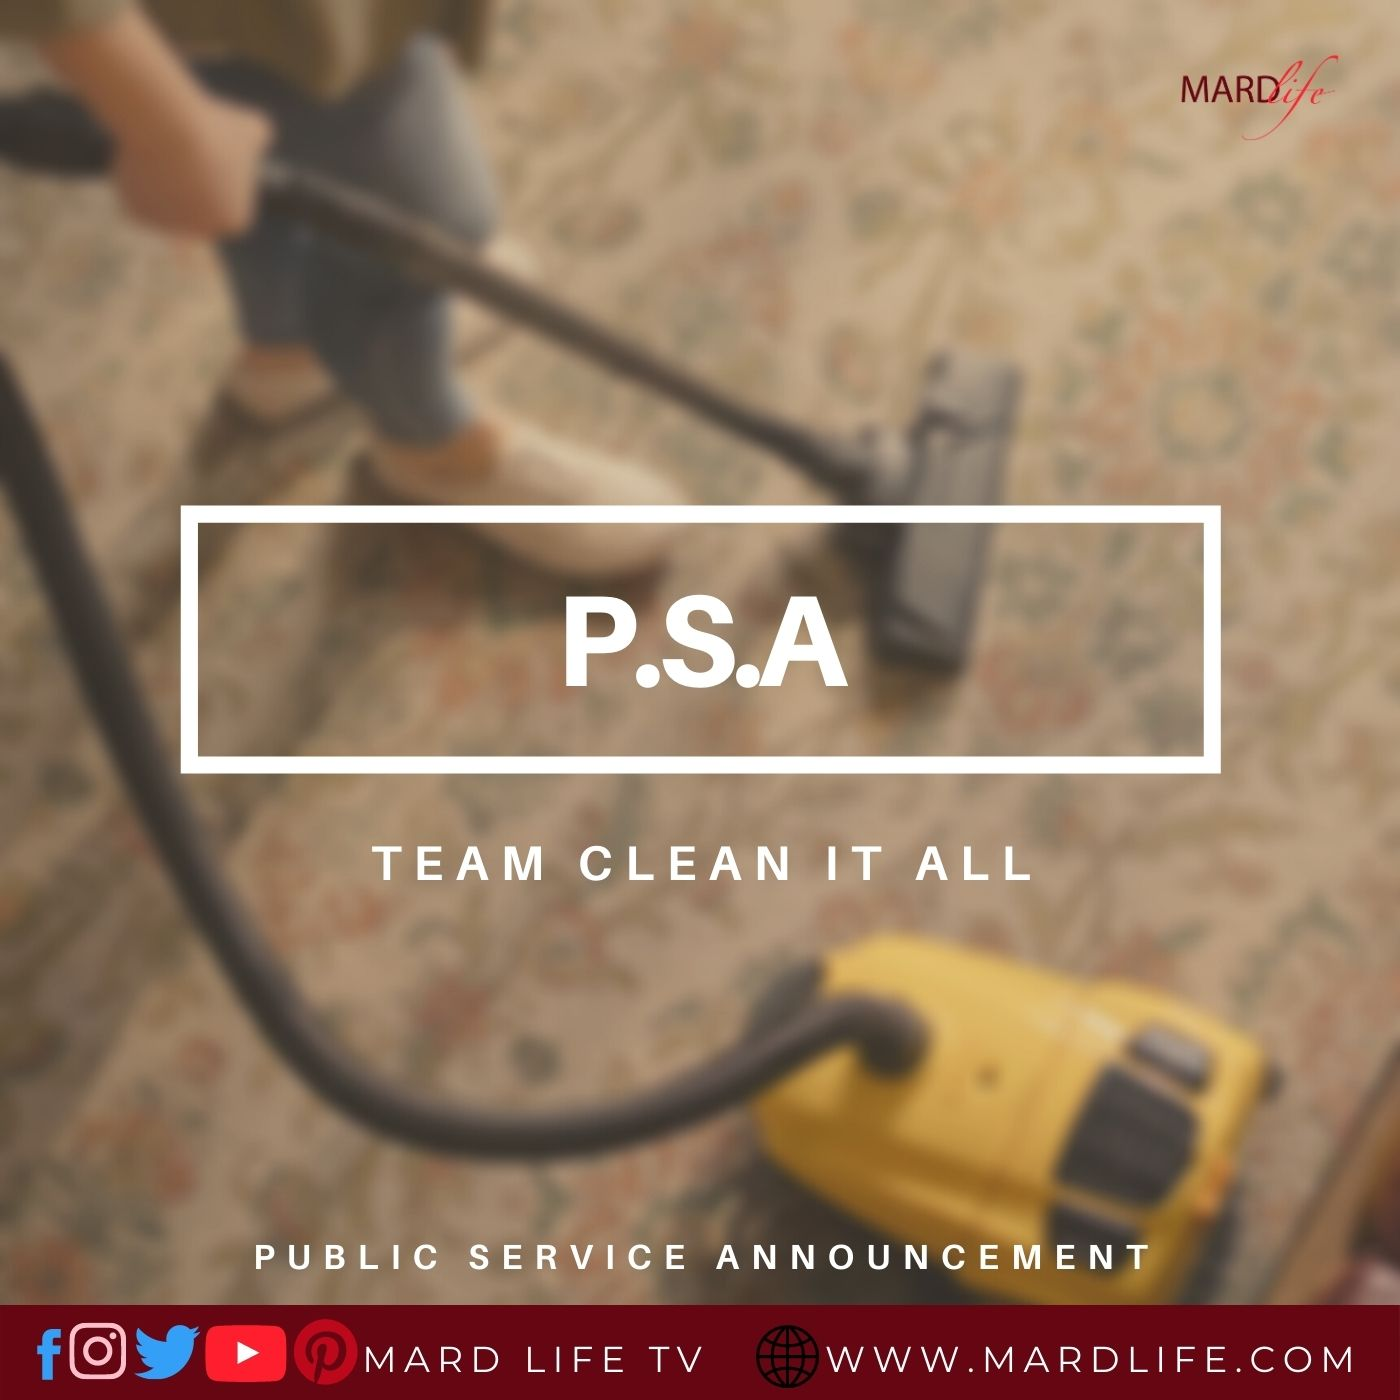 PSA: Team Clean It All